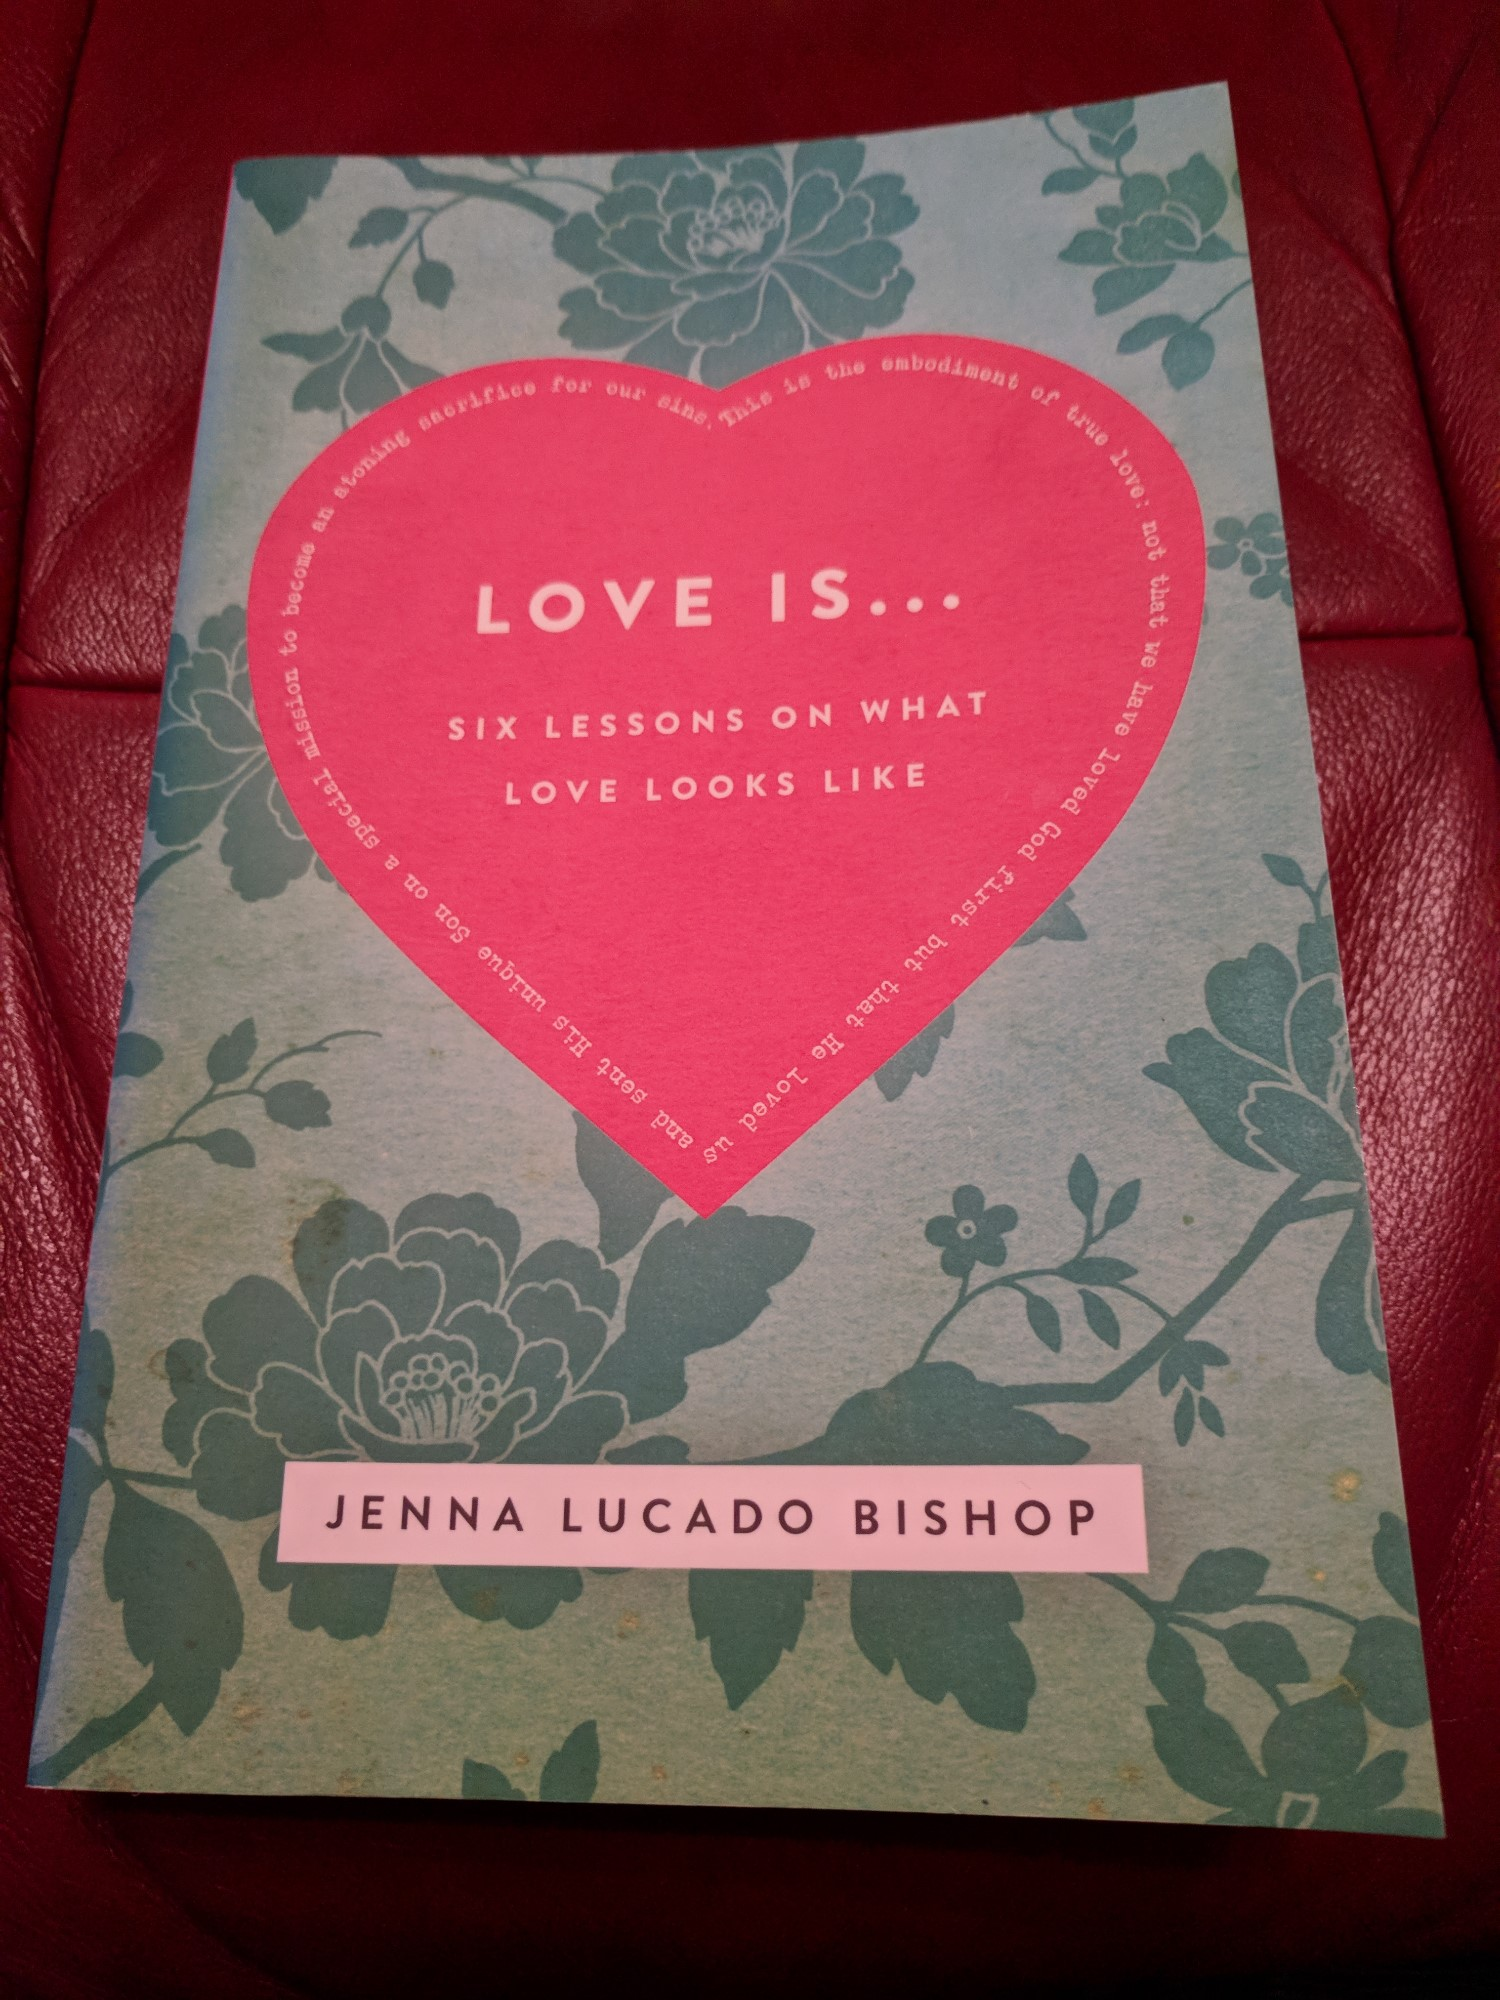 Jenna Lucado Bishop - Love Is...